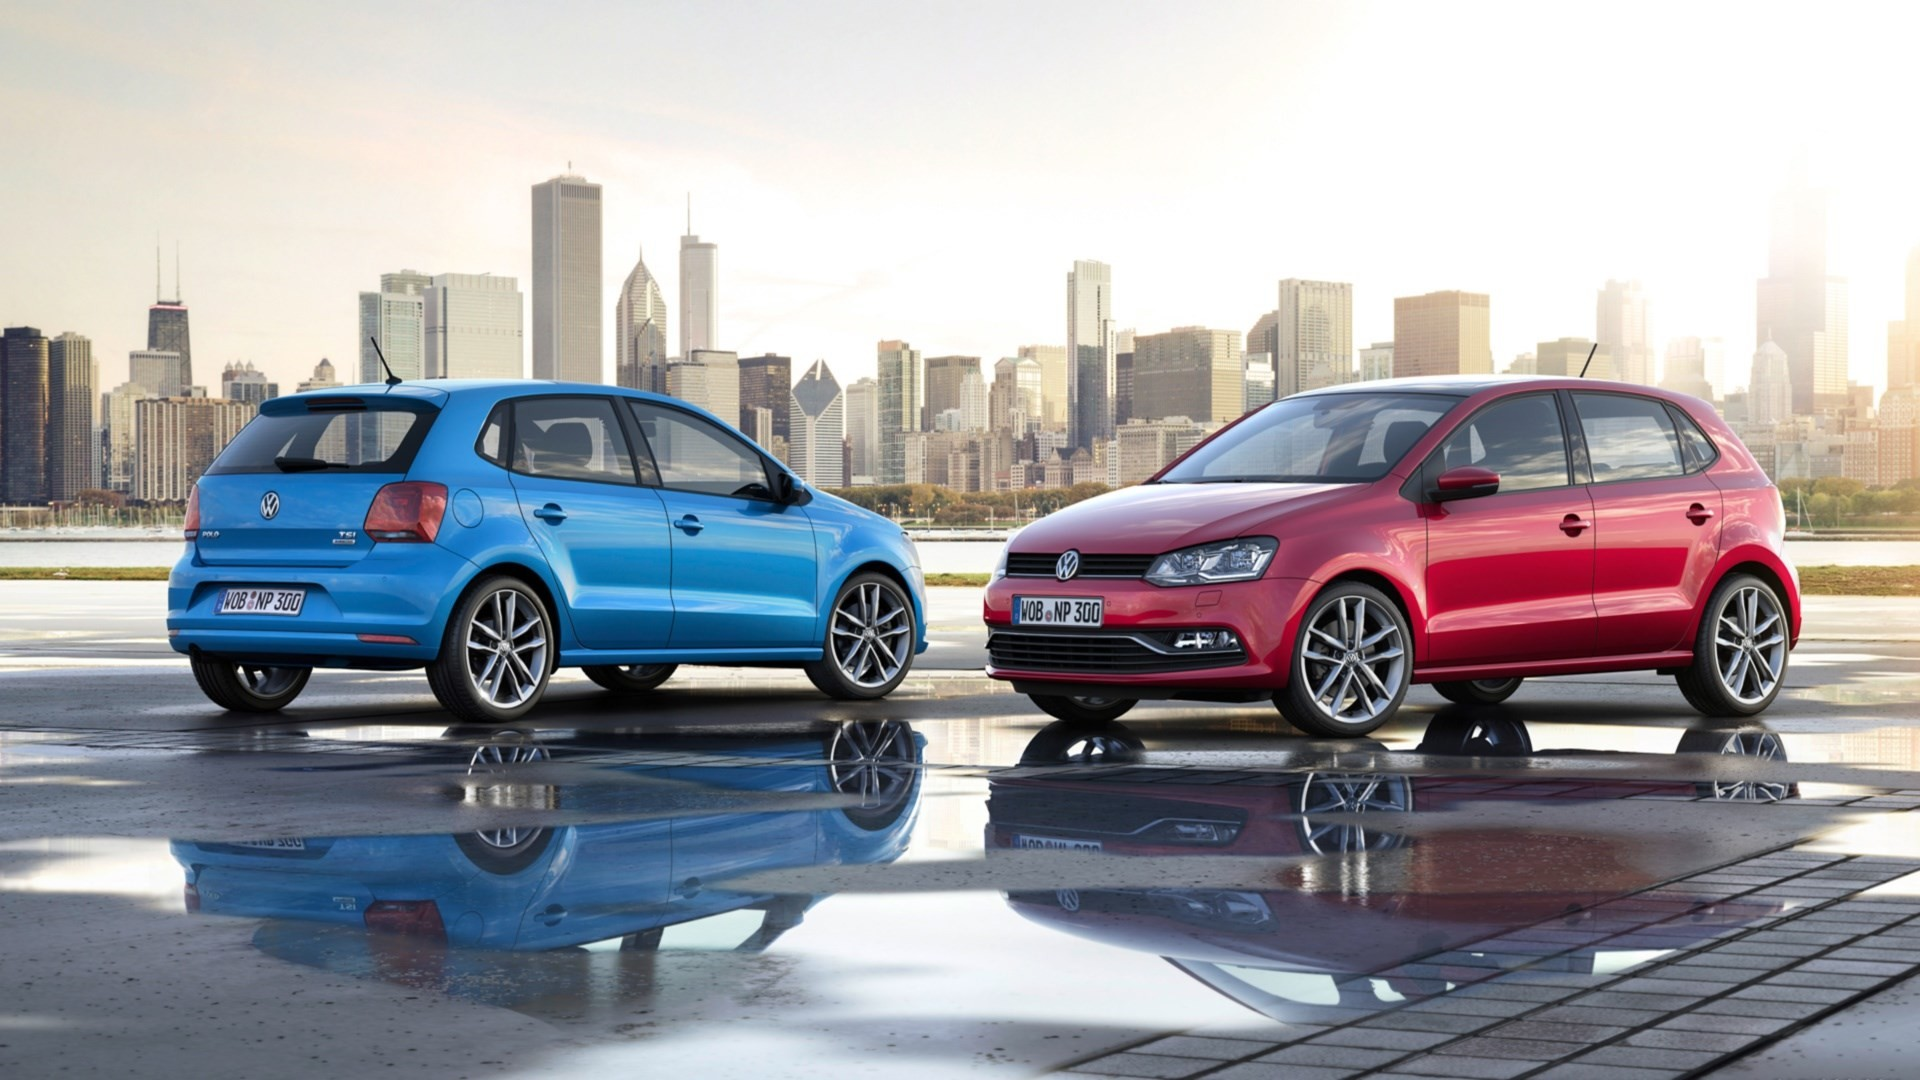 volkswagen polo – Full HD Wallpaper, Photo